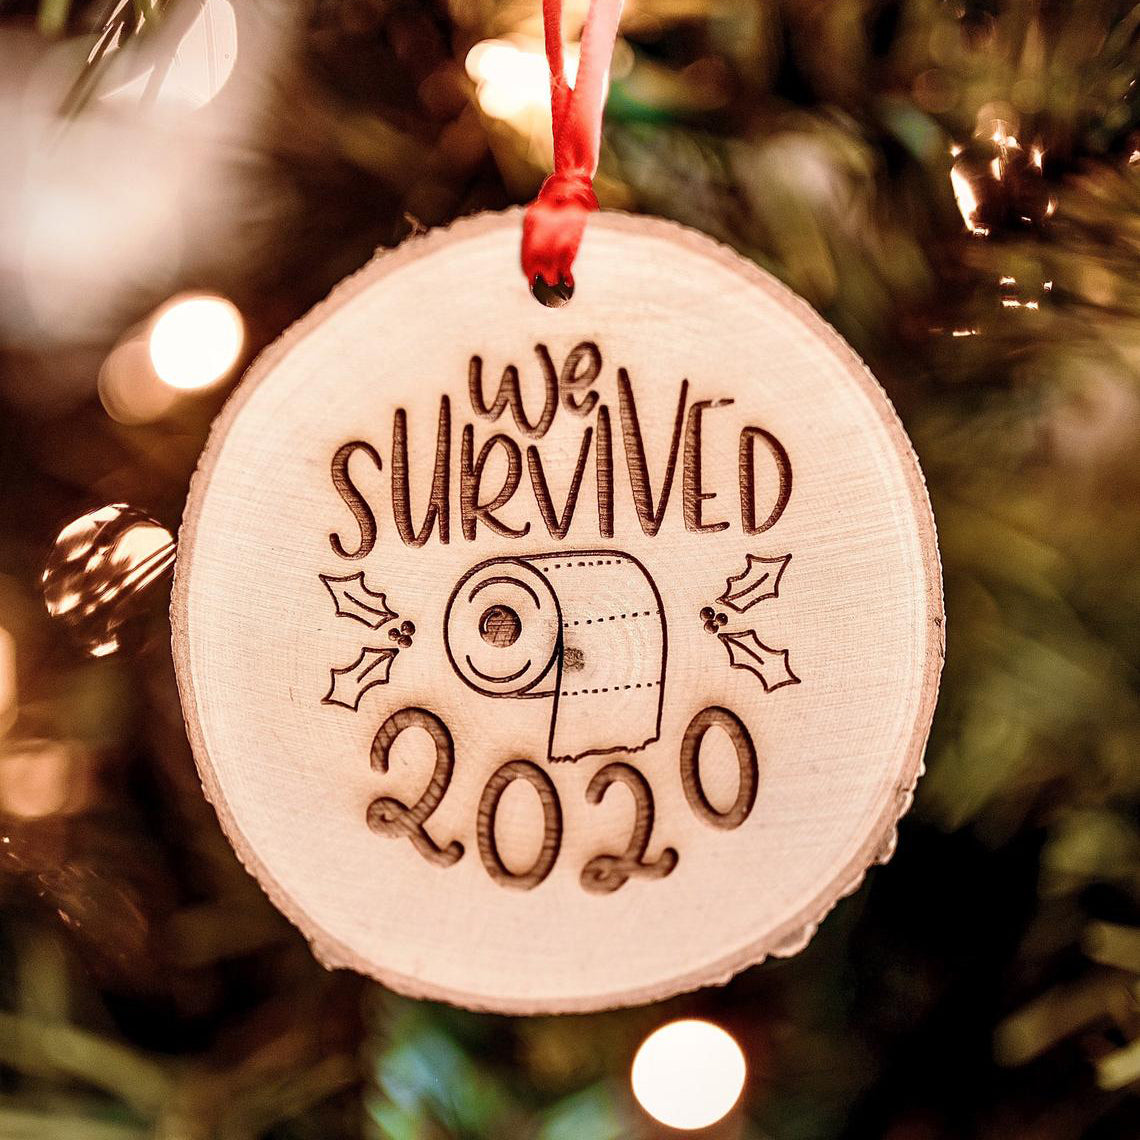 Pandemic Toilet Paper Shortage Christmas Ornament, I Survived 2020 Funny Ornament